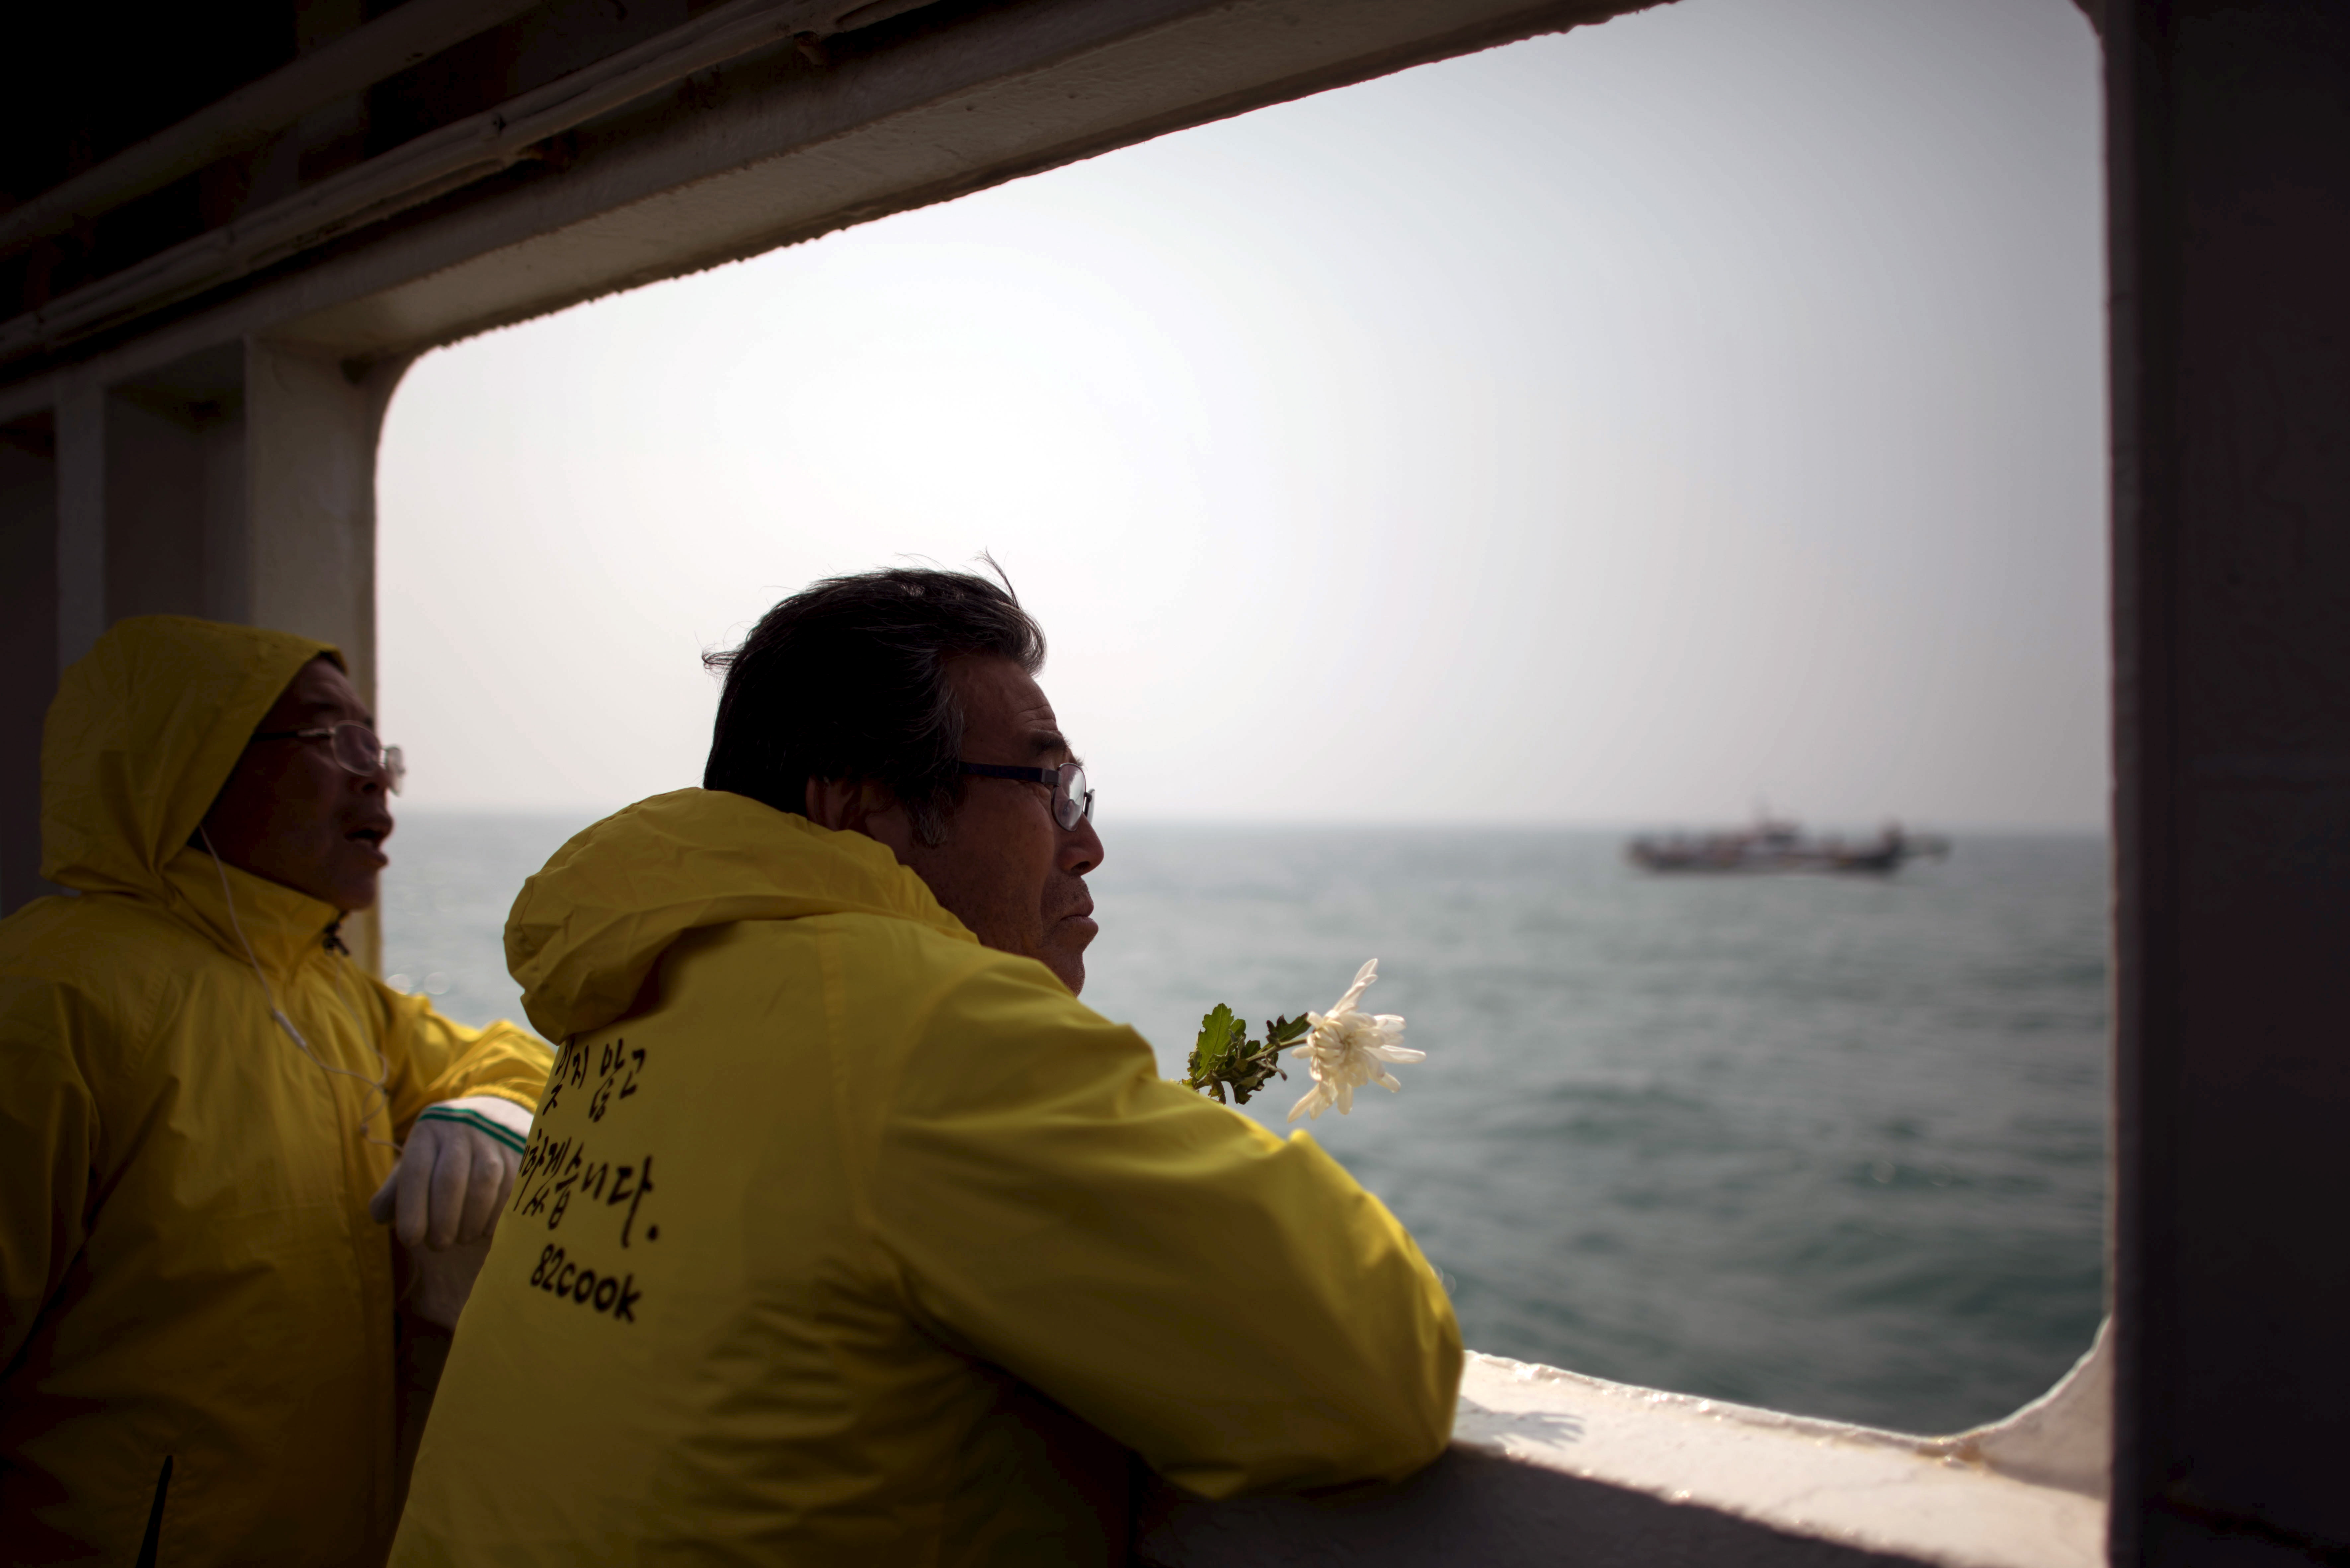 A relative of a victim of the Sewol ferry disaster holds a flower as he stands on the deck of a boat during a visit to the site of the sunken ferry, off the coast of South Korea's southern island of Jindo April 15, 2015